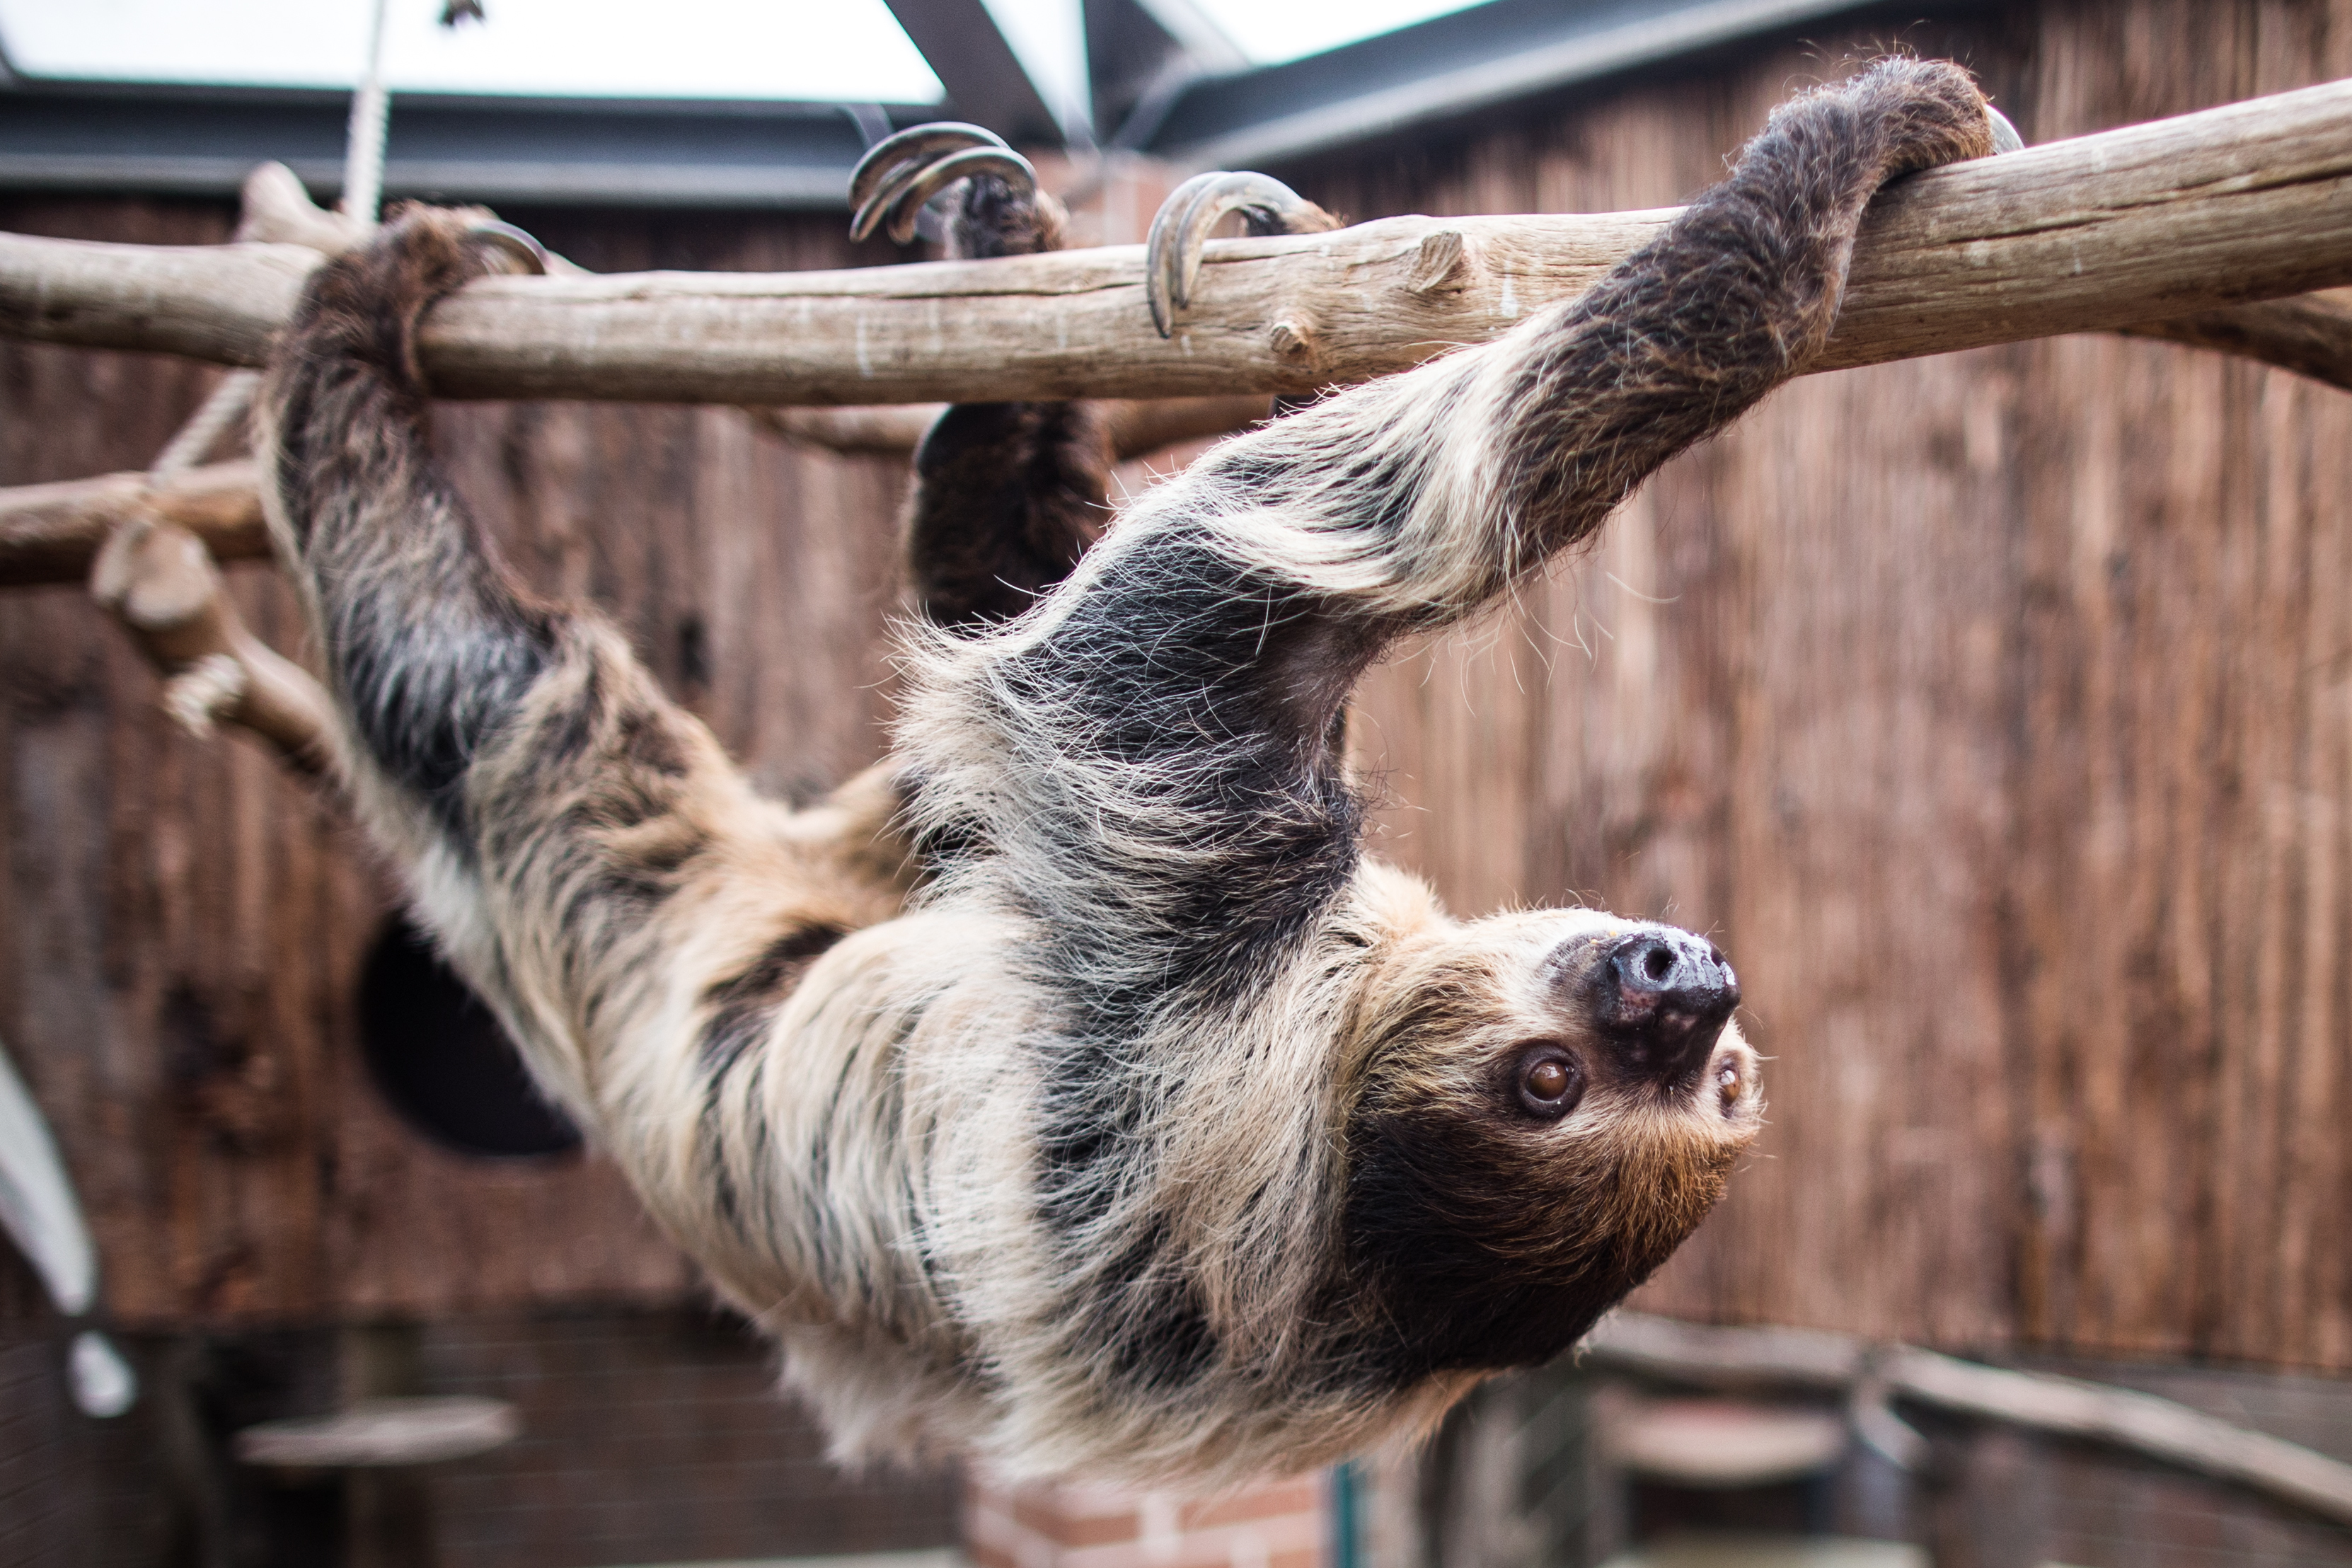 A two-toed sloth. Credit: PA